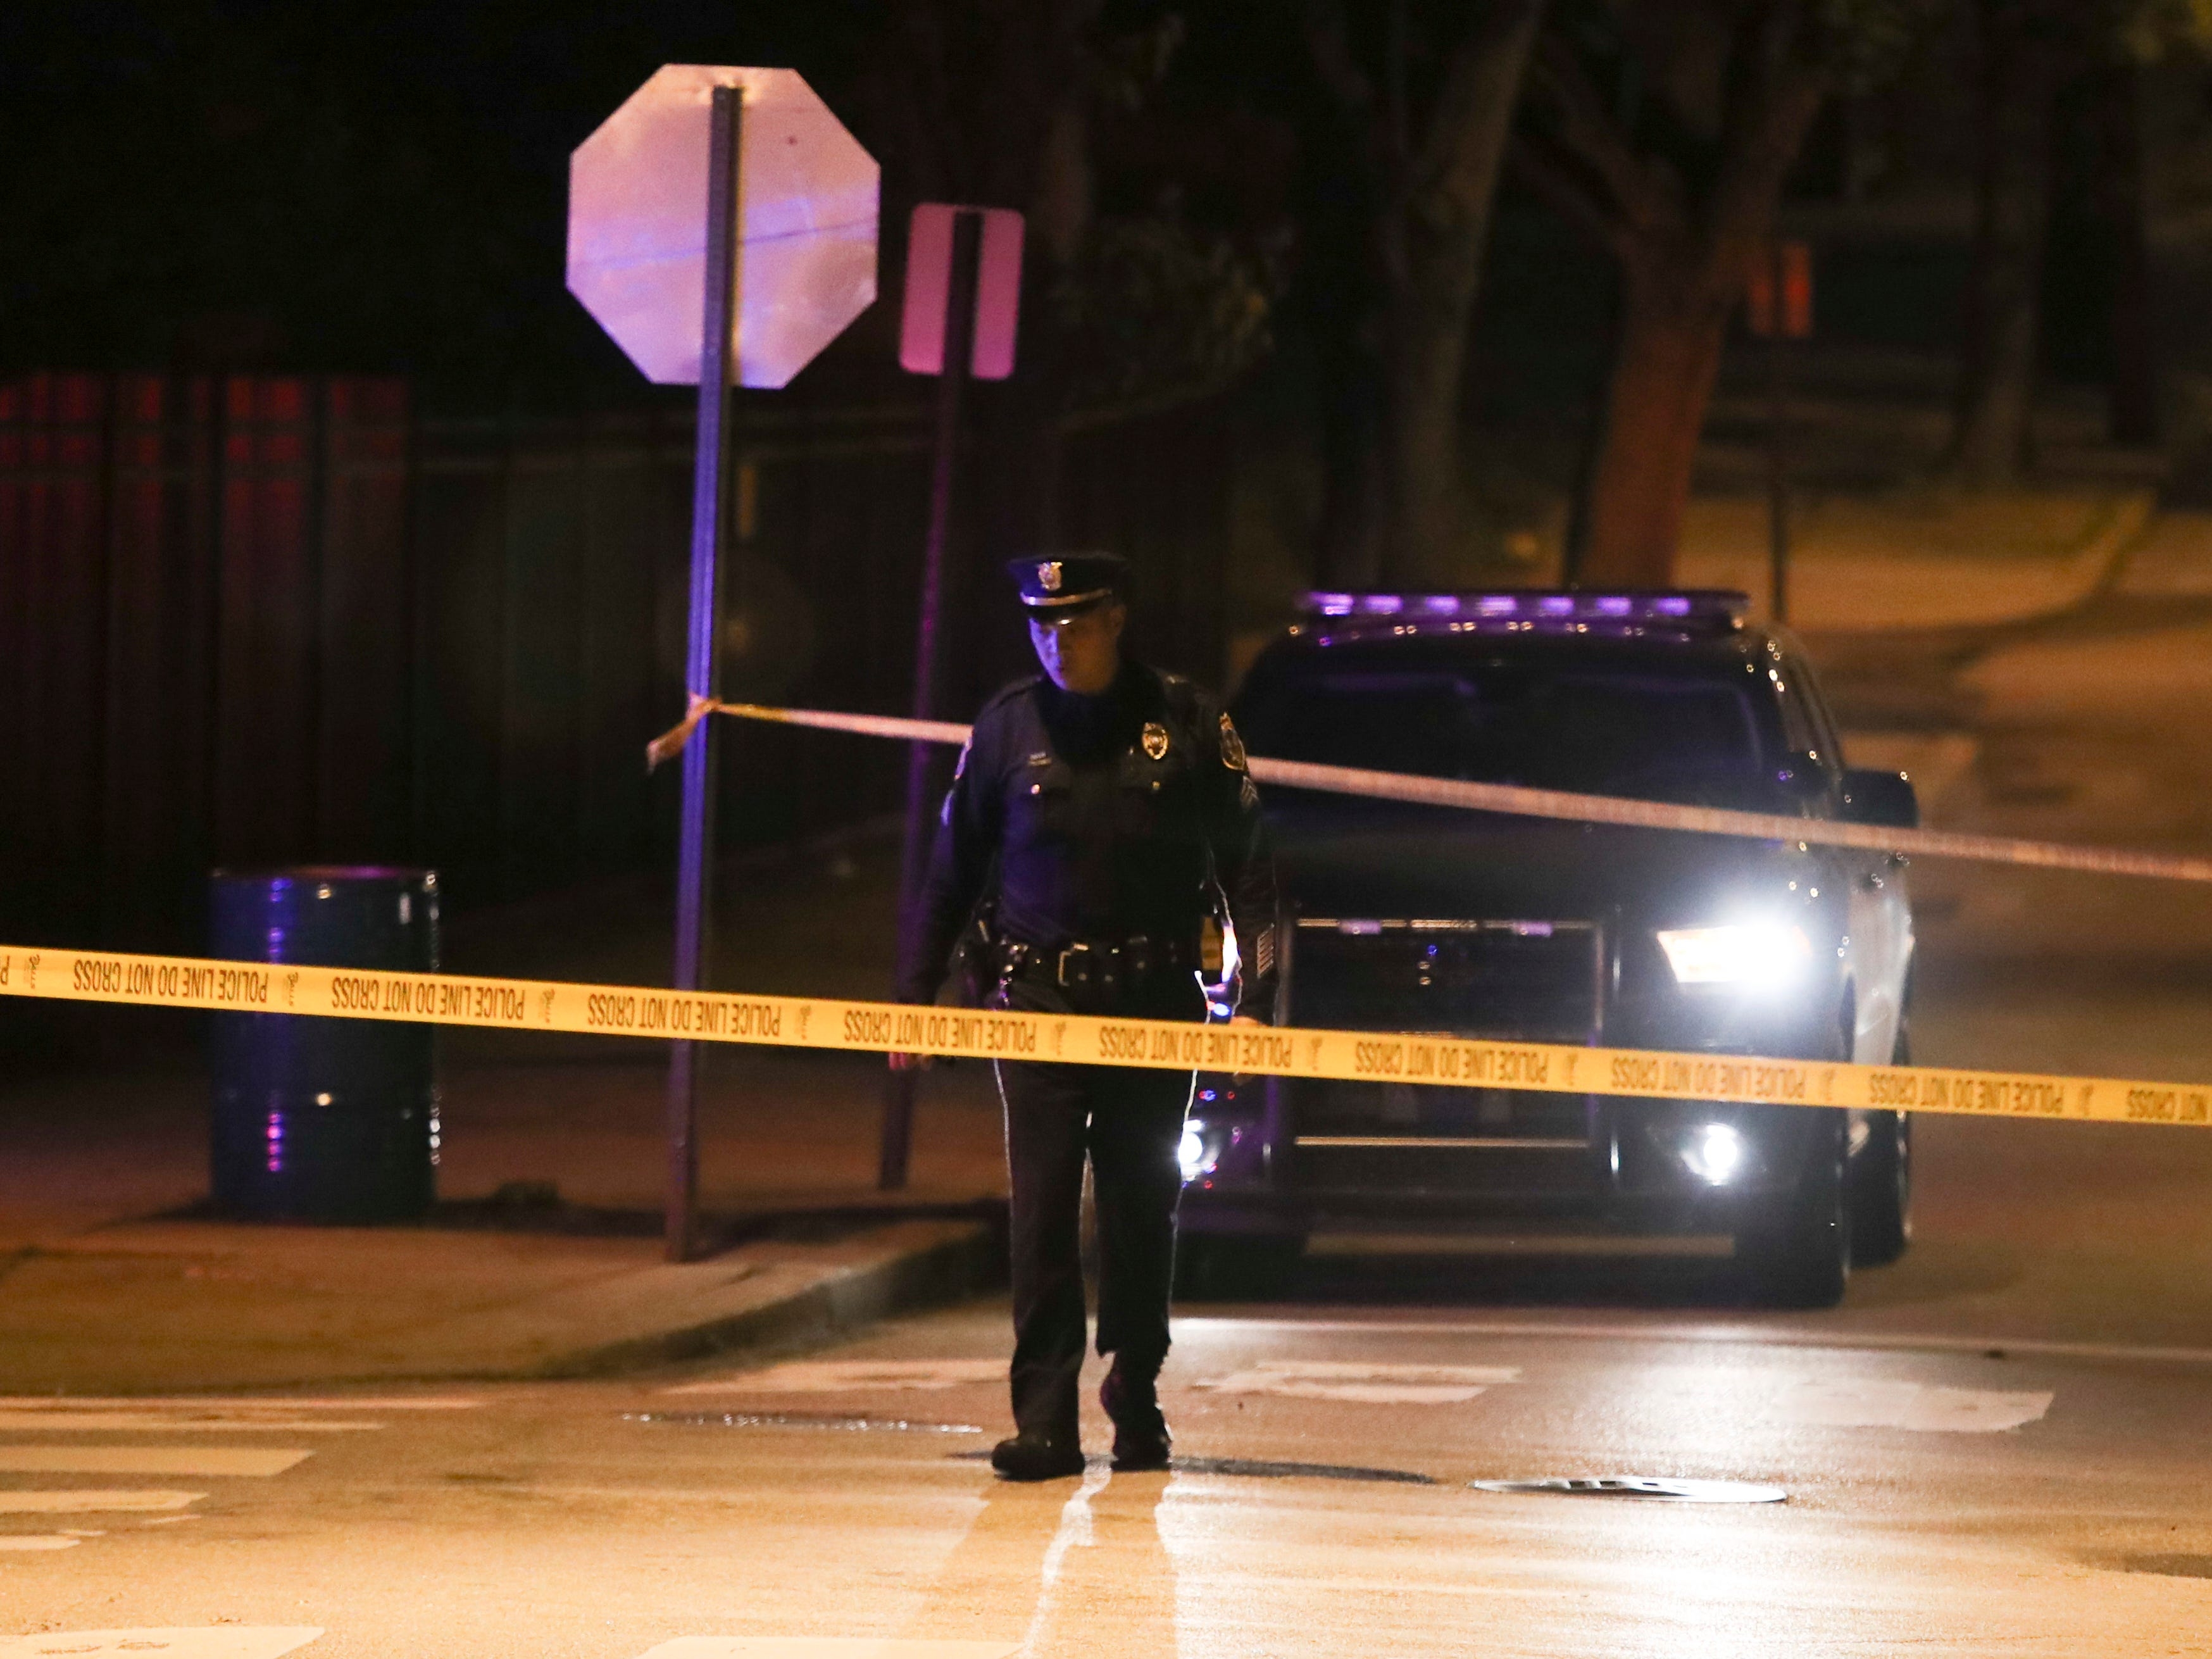 Wilmington police investigate a shooting reported about 10 p.m. Thursday in the area of Helen Chambers Park on Madison Street. Police had taped off Madison Street from W. 4th Street to W. 7th Street but concentrated in the 600 block in and along the park.